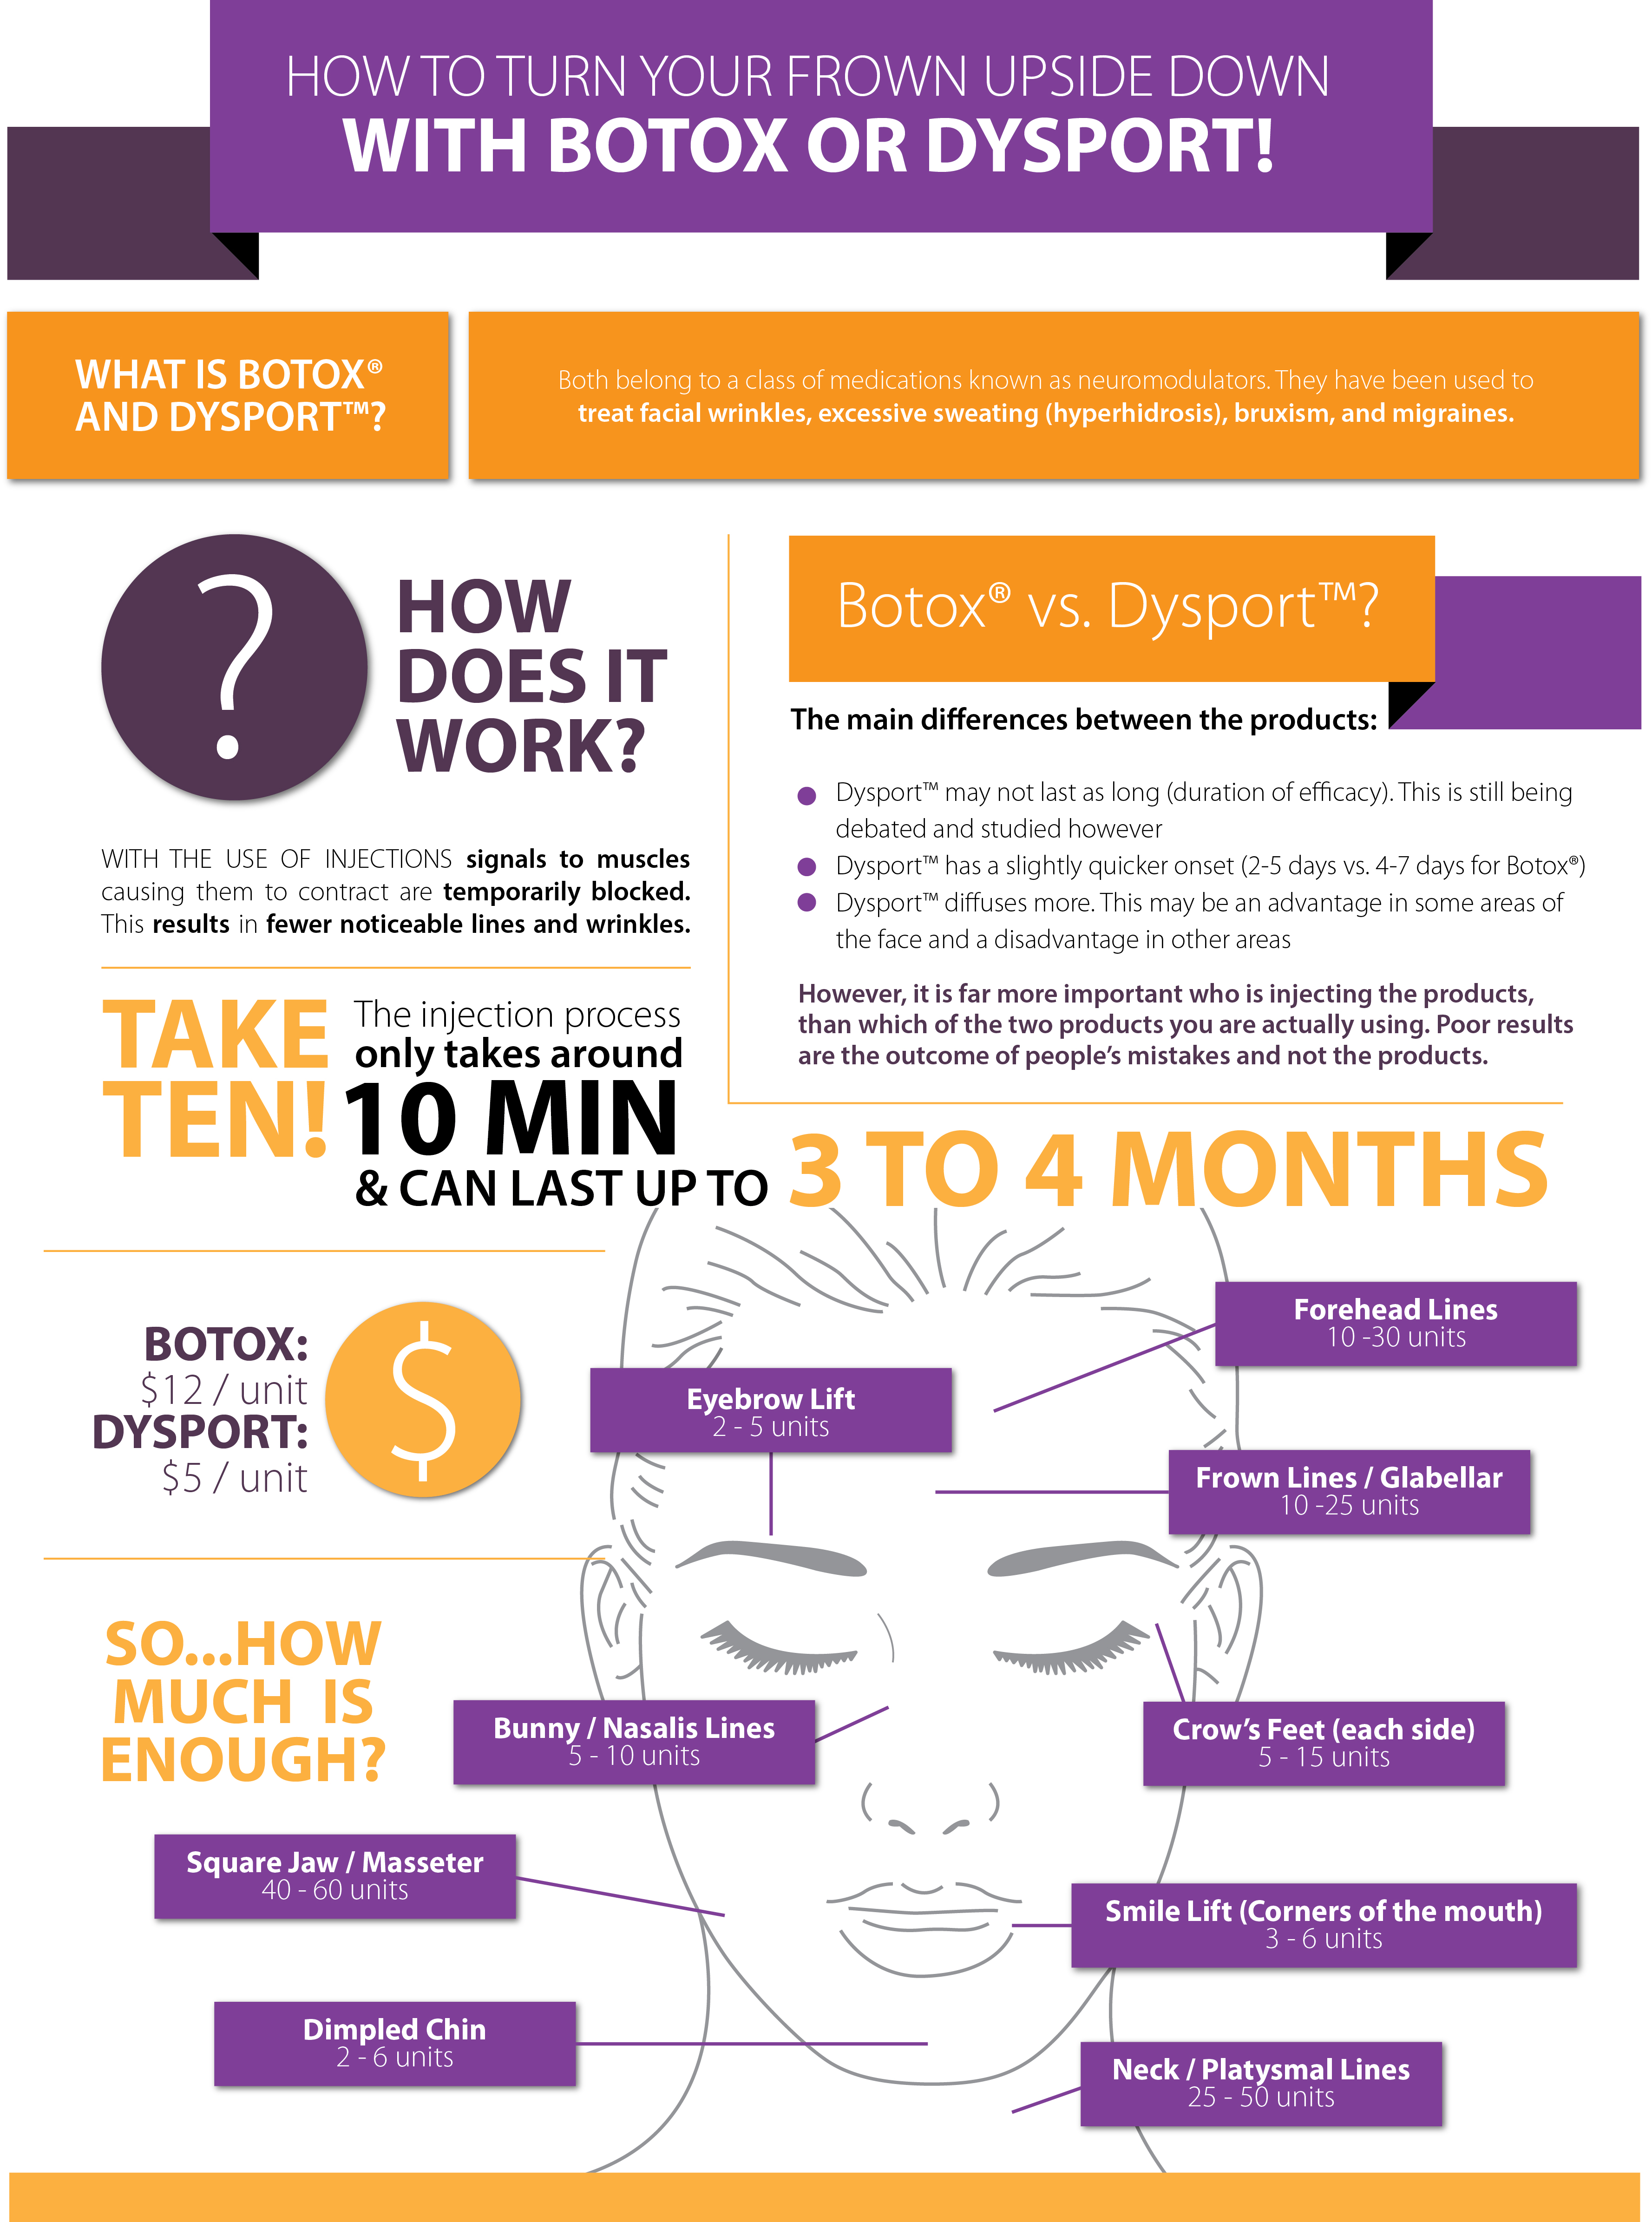 Botox Vs Dysport: Why and When - Infographic